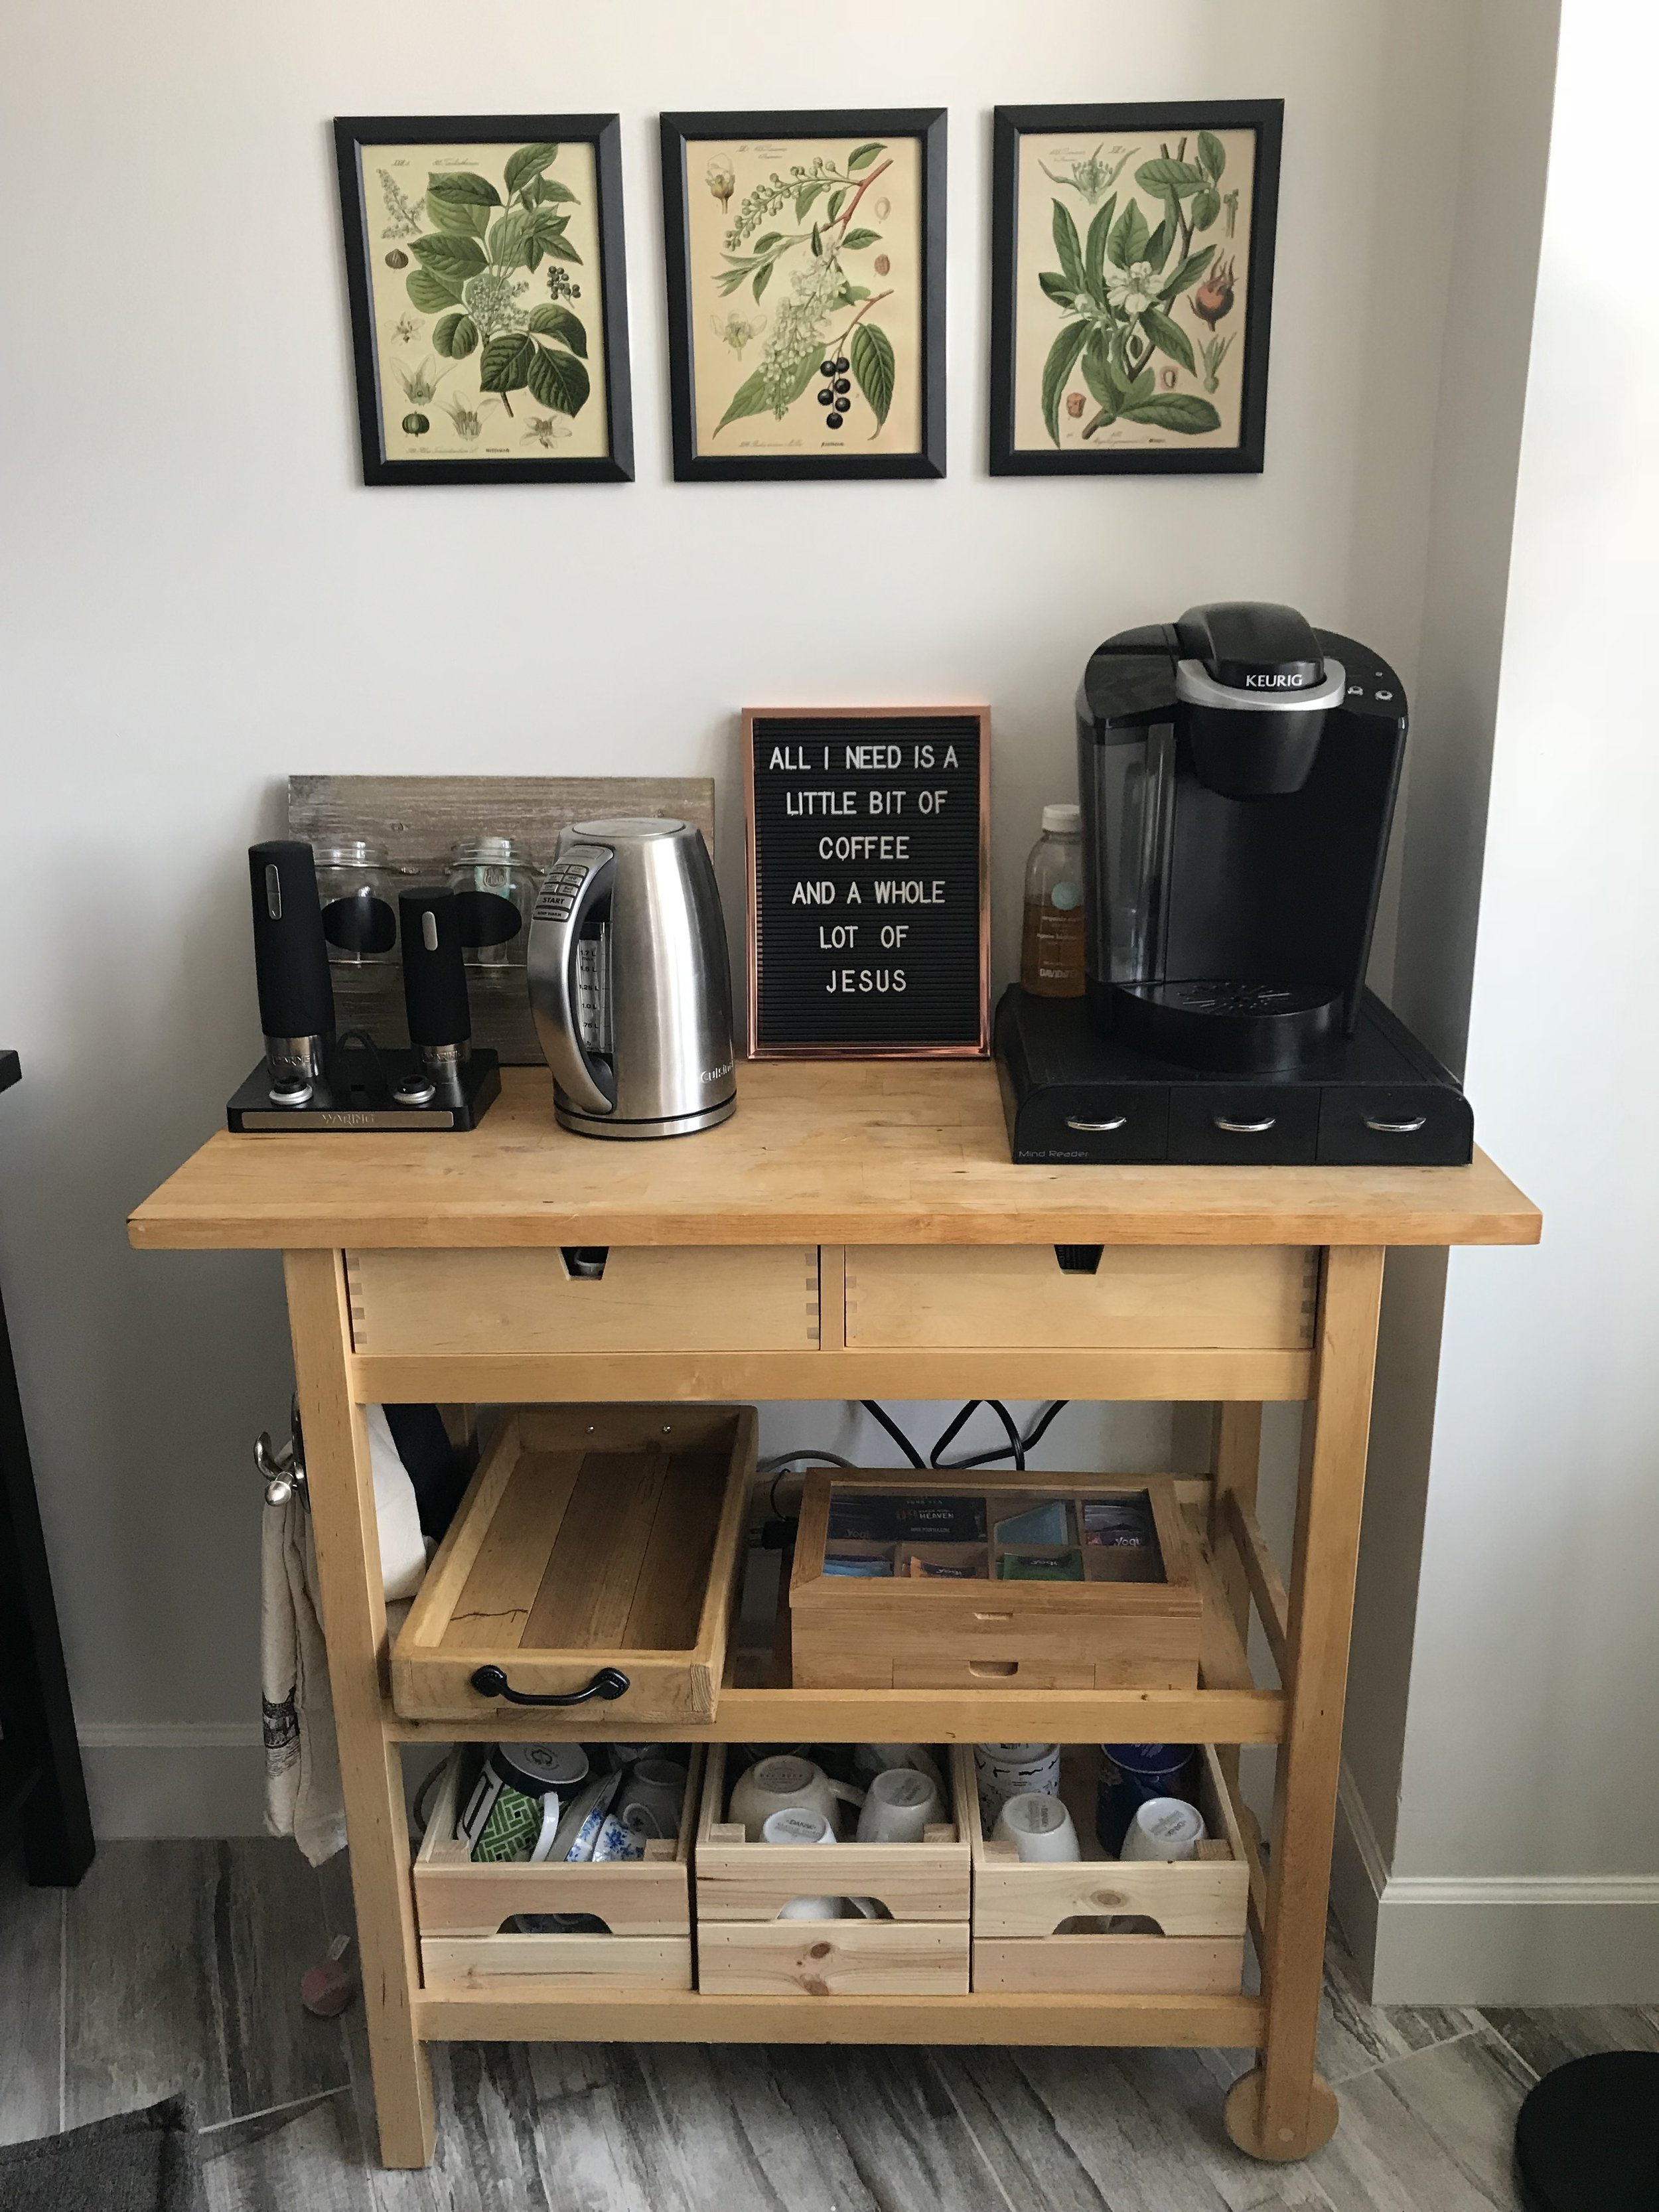 My husband and I love to drink an assortment of teas and coffees. We utilized an  IKEA  kitchen cart to store all of our appliances, mugs, teas, coffees, and condiments.